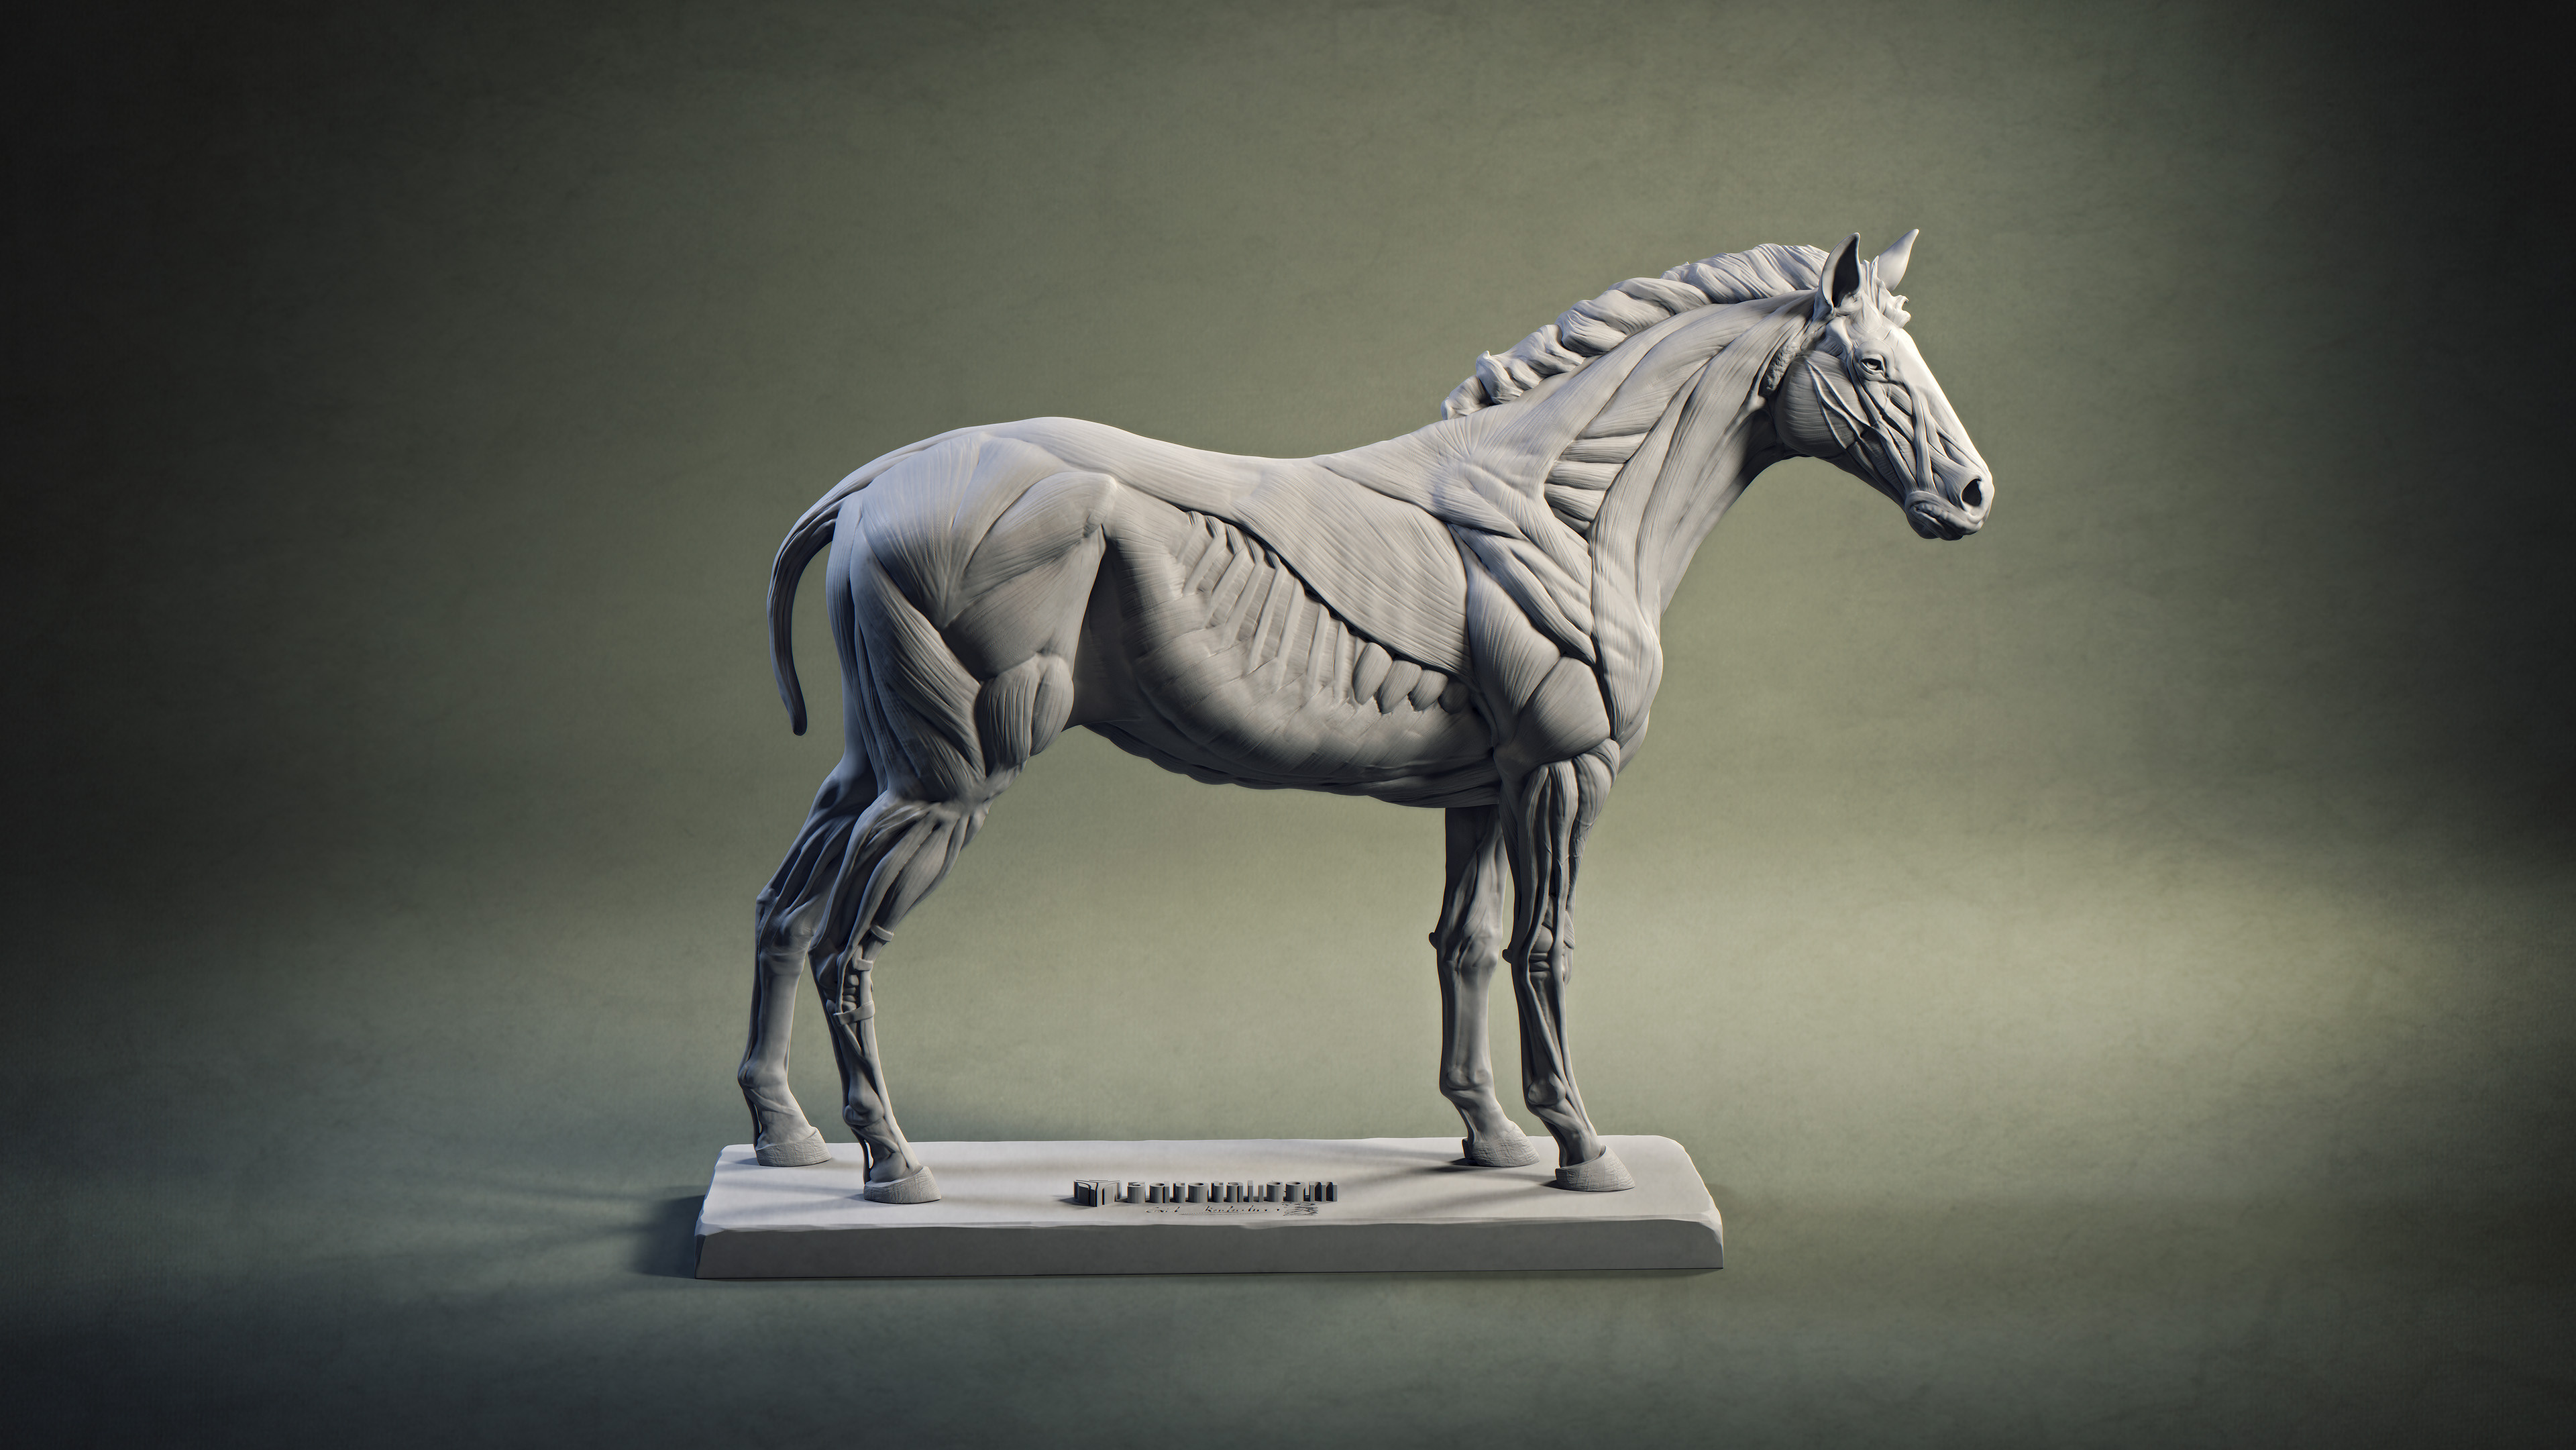 Quarter horse - Render I did for the Postcard. Made with Maya and Arnold.